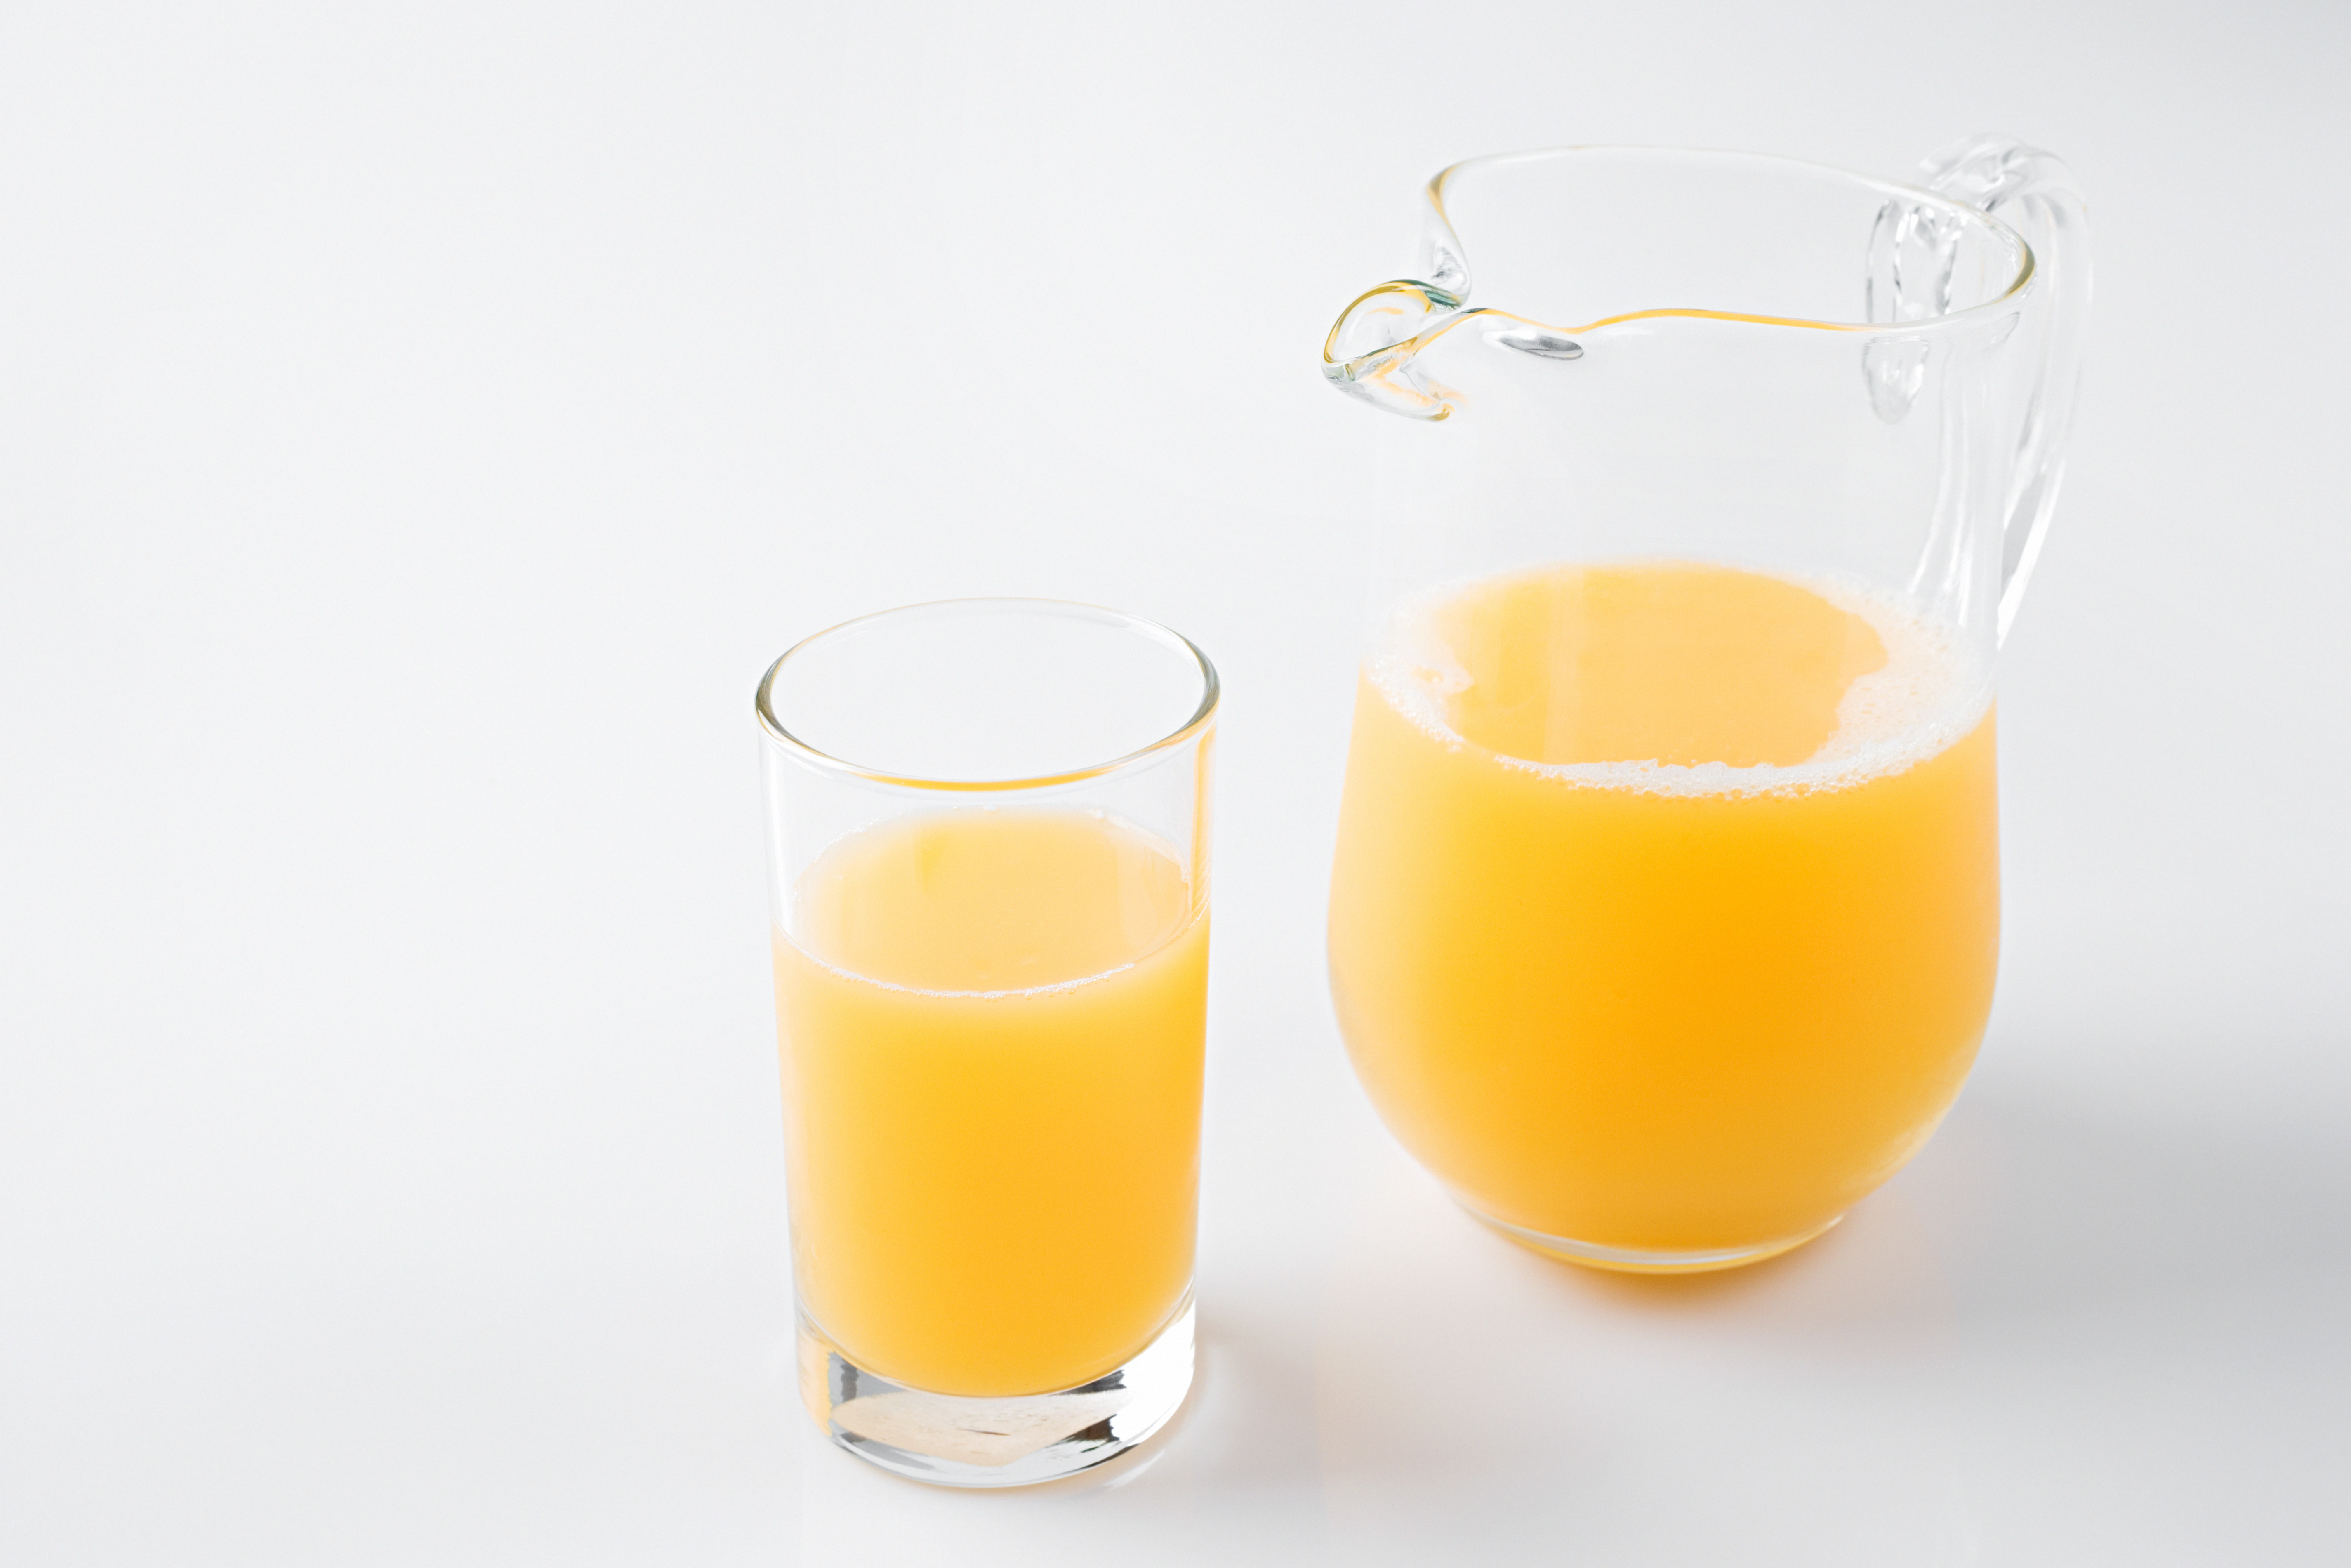 Is Juice From Concentrate Healthy? | Healthy Eating | SF Gate